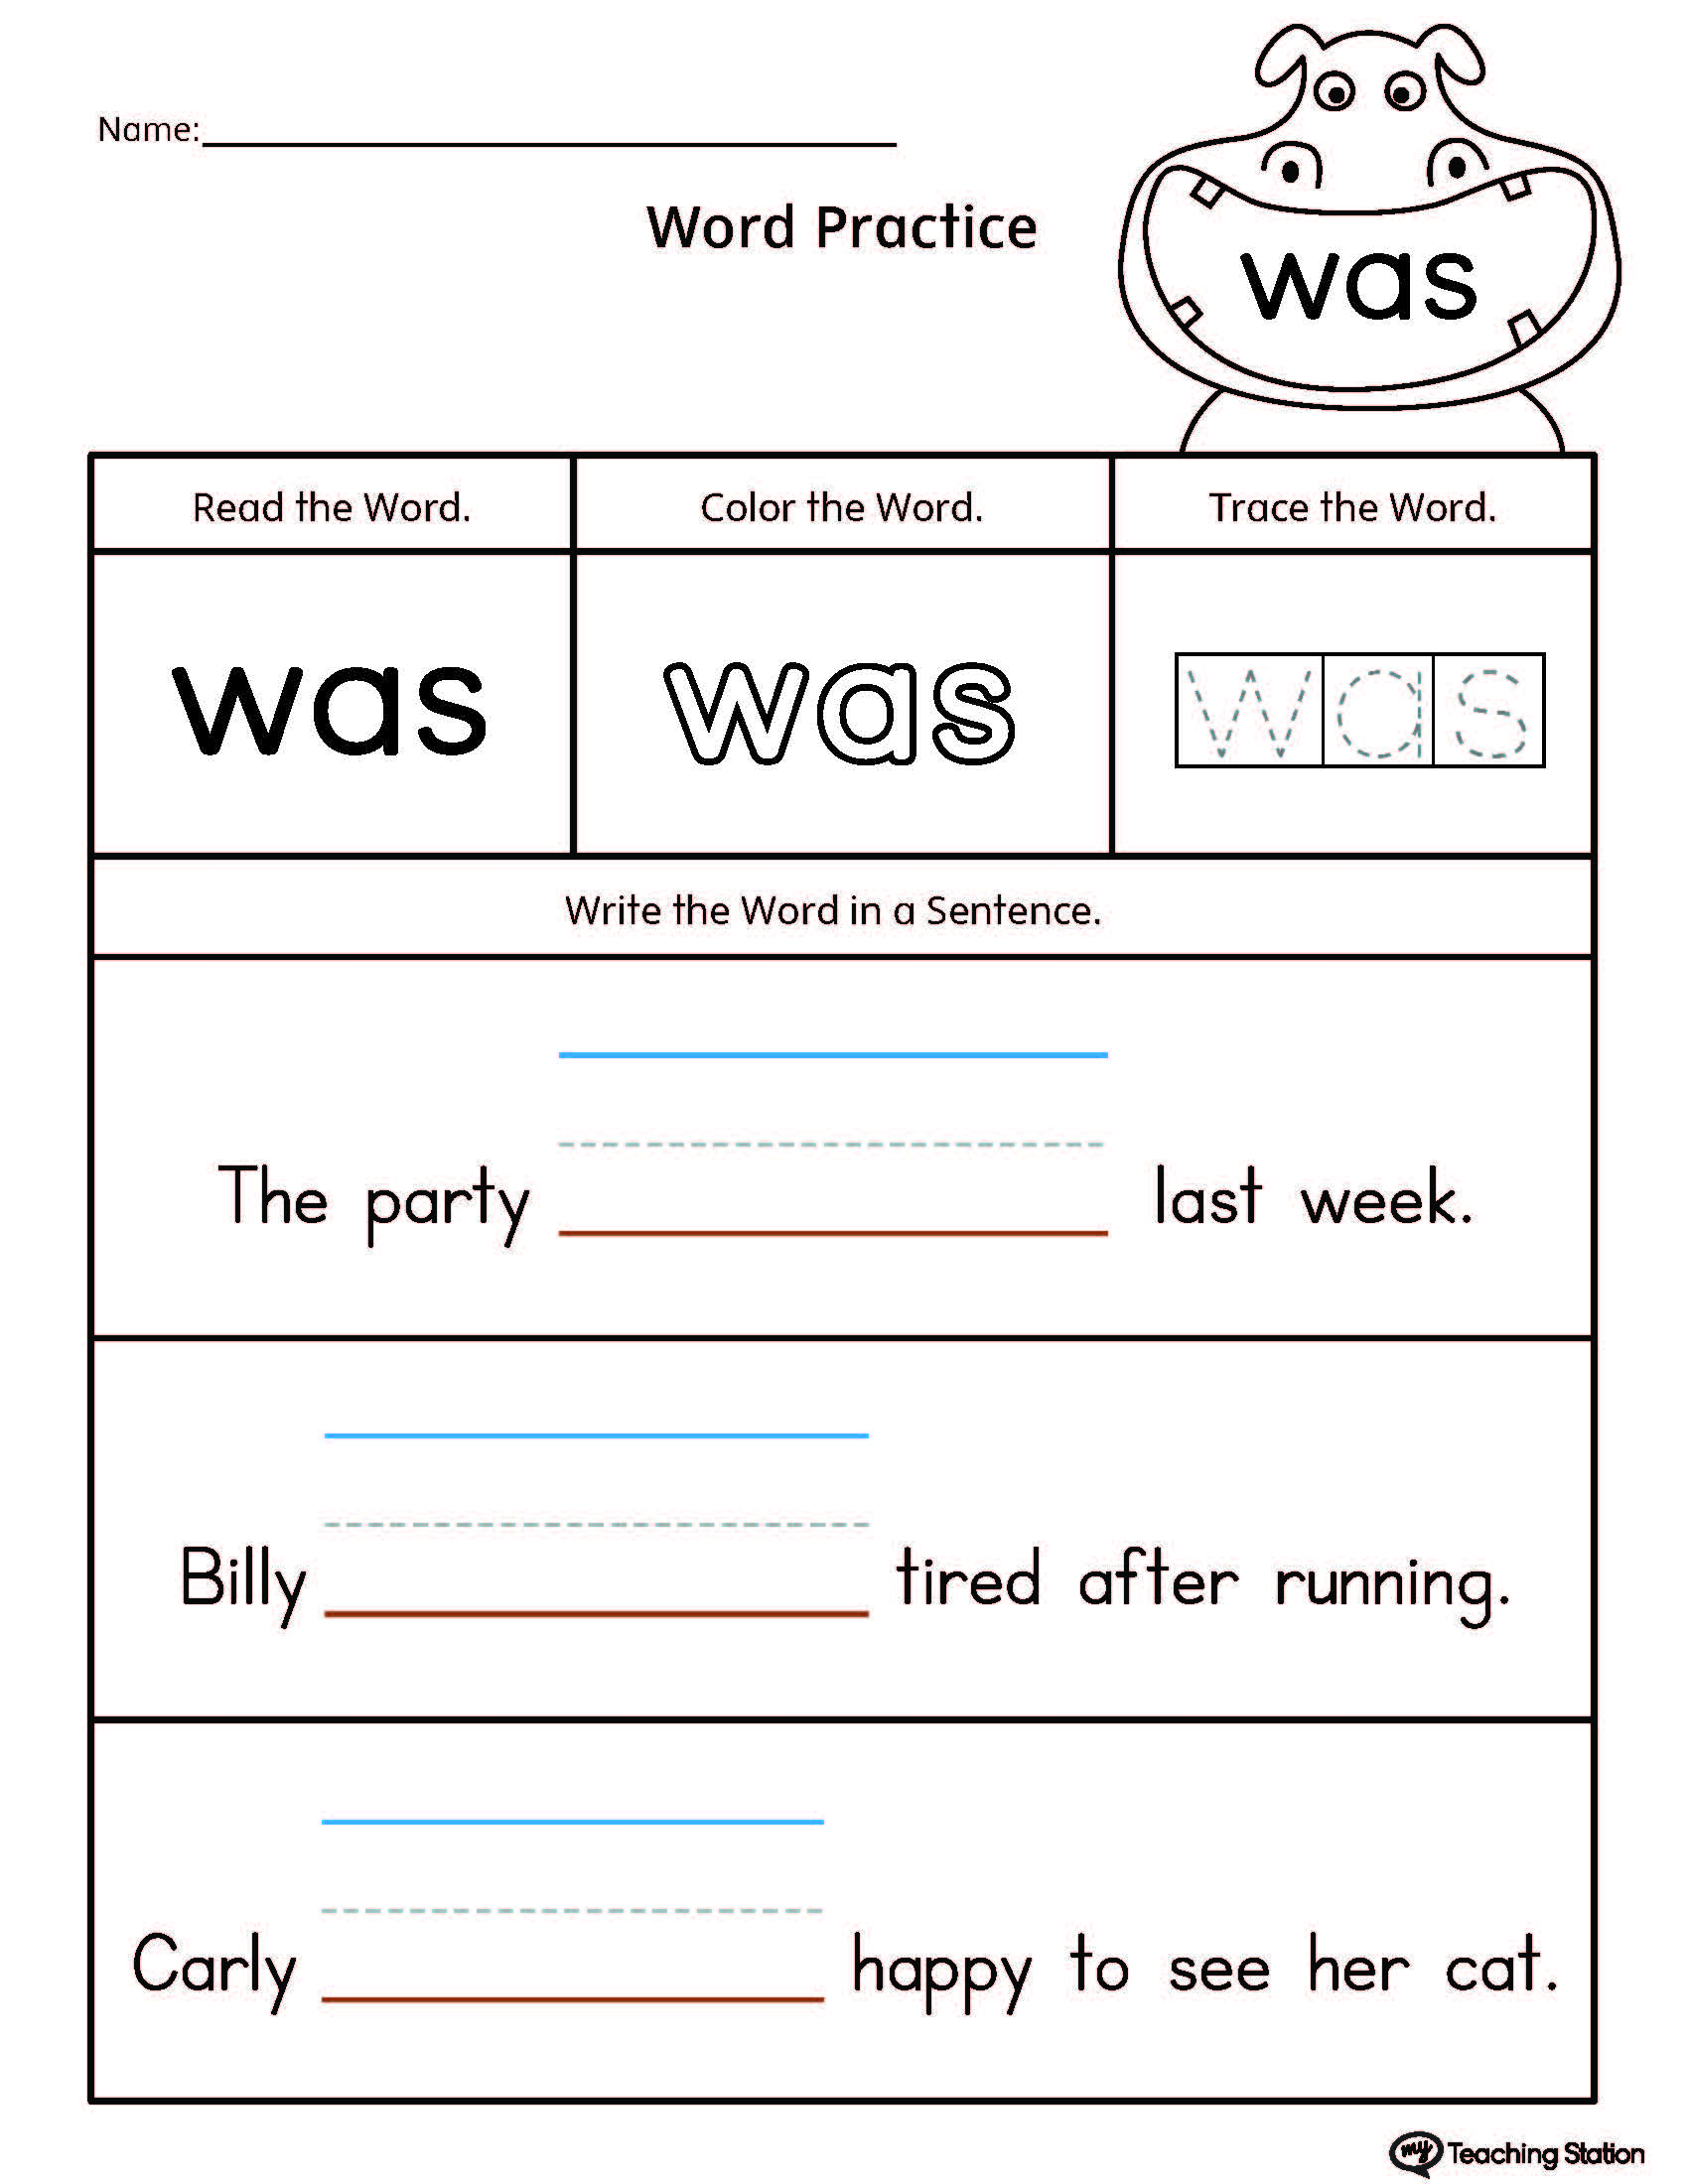 Worksheets Sight Words Worksheets build sentences using sight word was myteachingstation com downloadfree worksheet